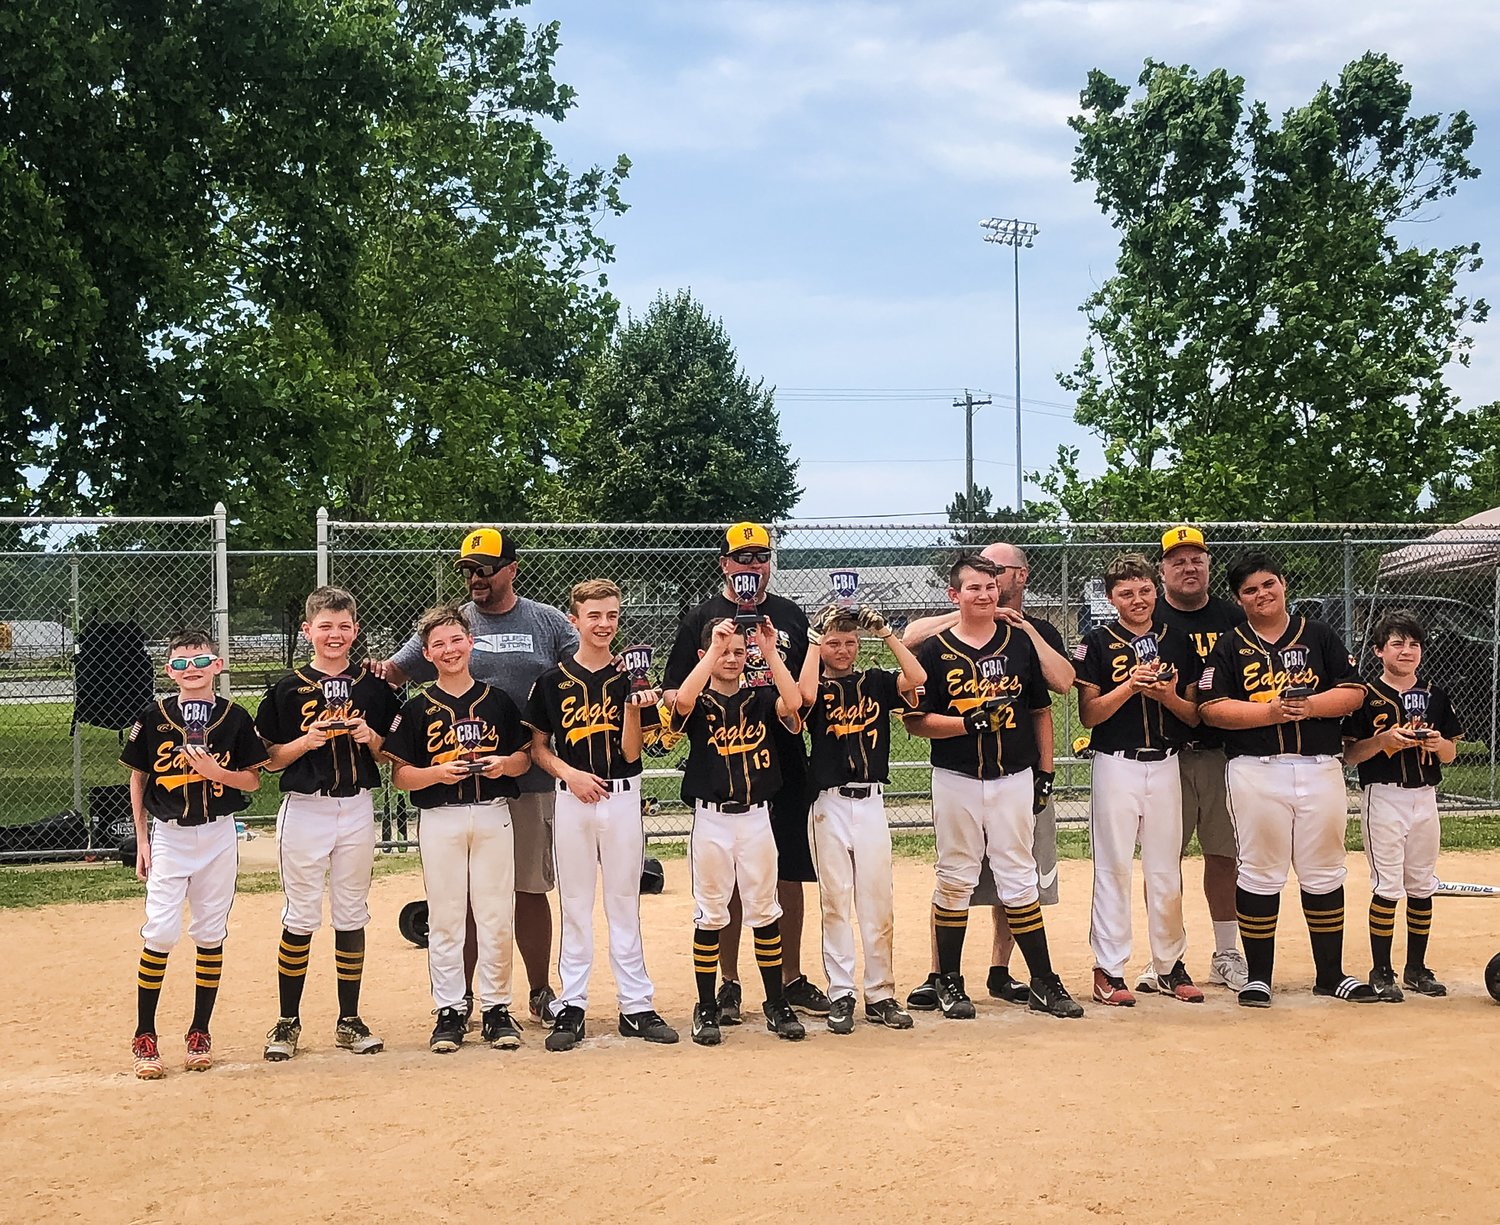 The 12U Pasadena Eagles Black baseball team staged an impressive comeback to overcome a 17-run deficit and defeat GORC 26-25 in the Chesapeake Baseball Association Silver Bracket postseason tournament championship game.